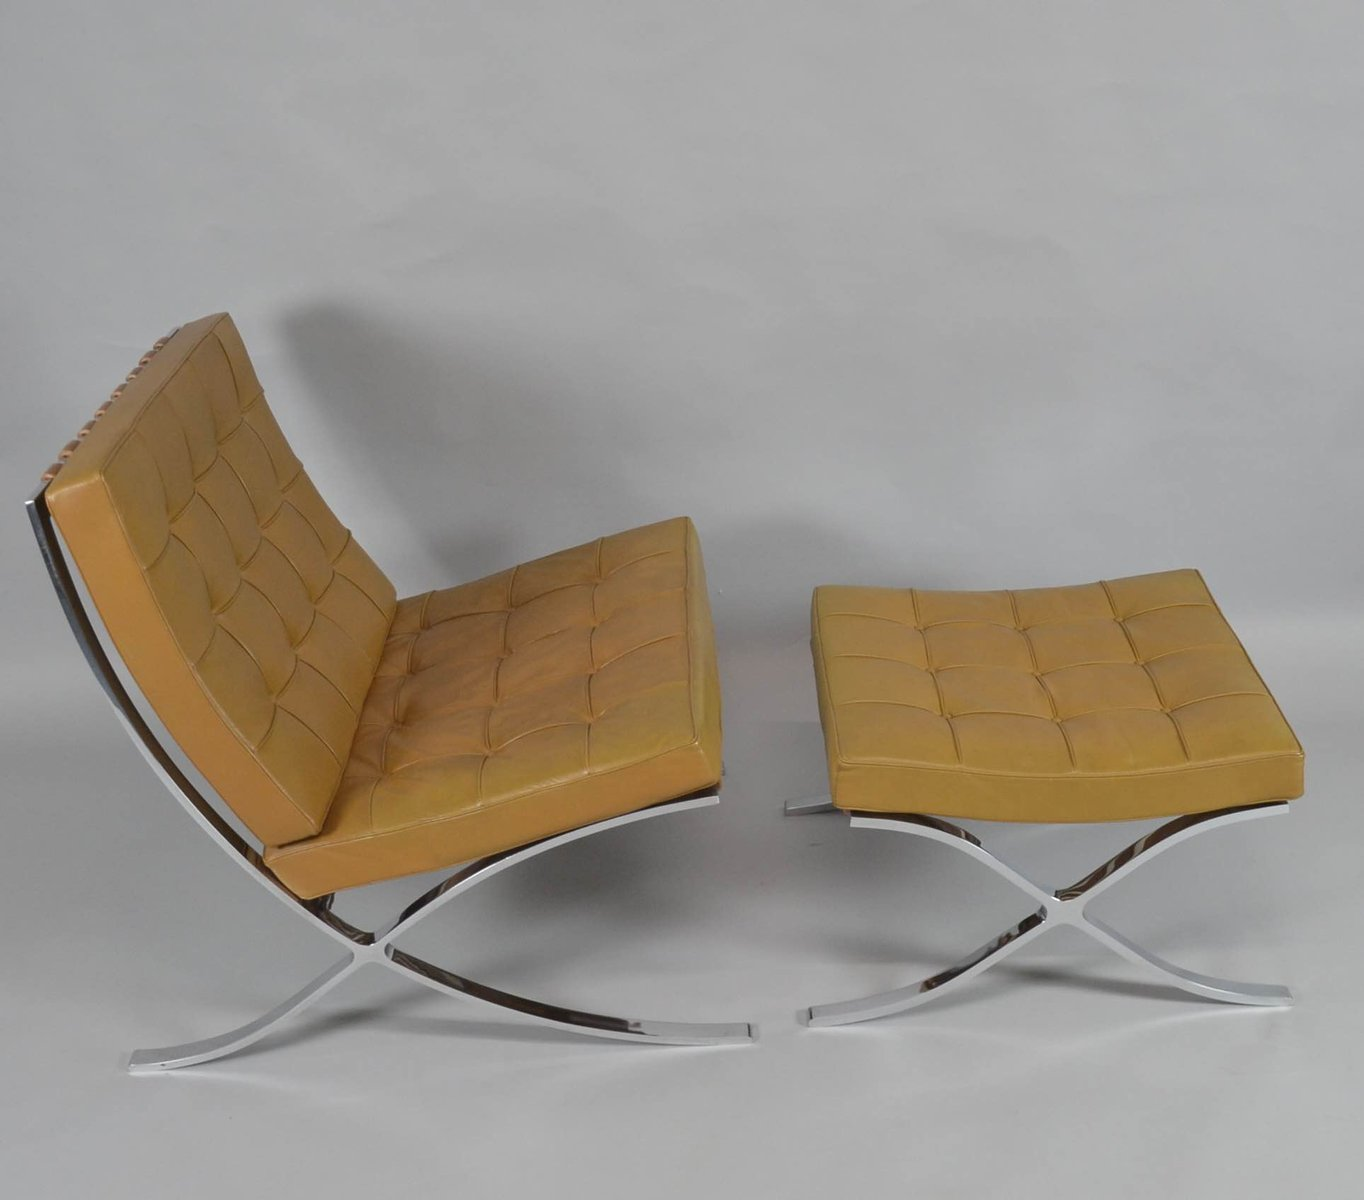 Barcelona Sessel Knoll Vintage Barcelona Chair With Ottoman By Ludwig Mies Van Der Rohe For Knoll International